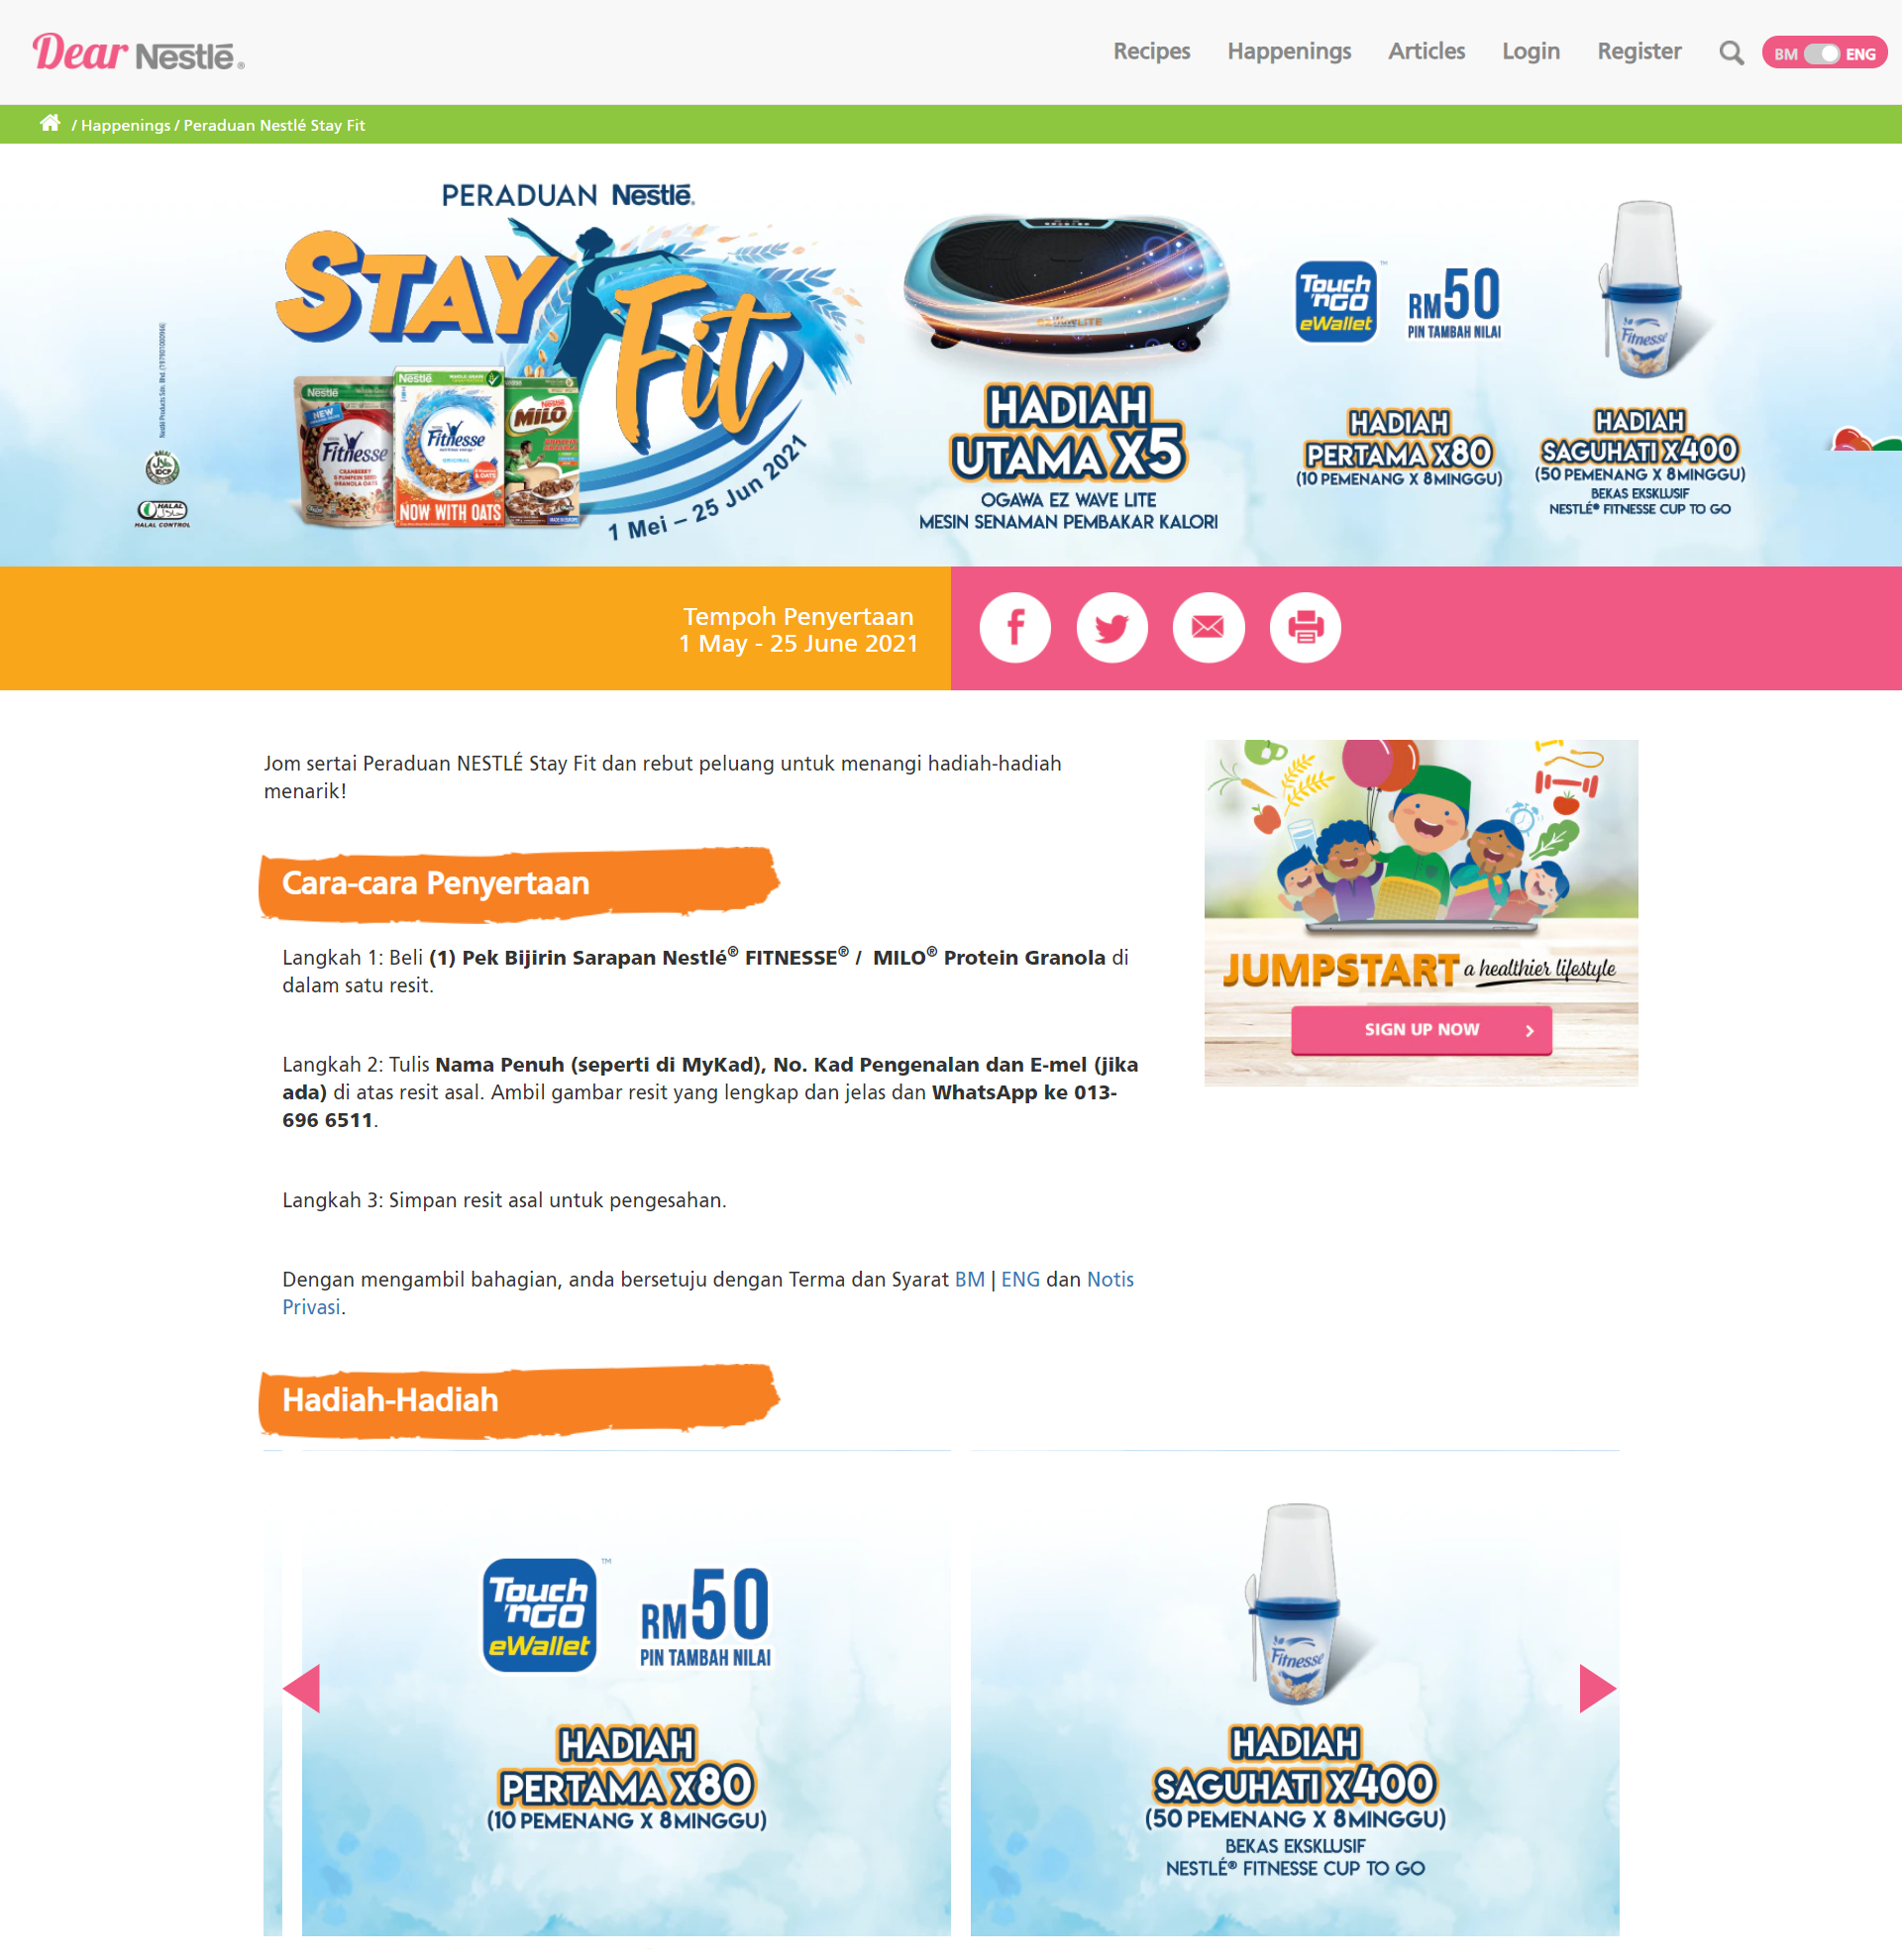 Nestle: Stay Fit Contest